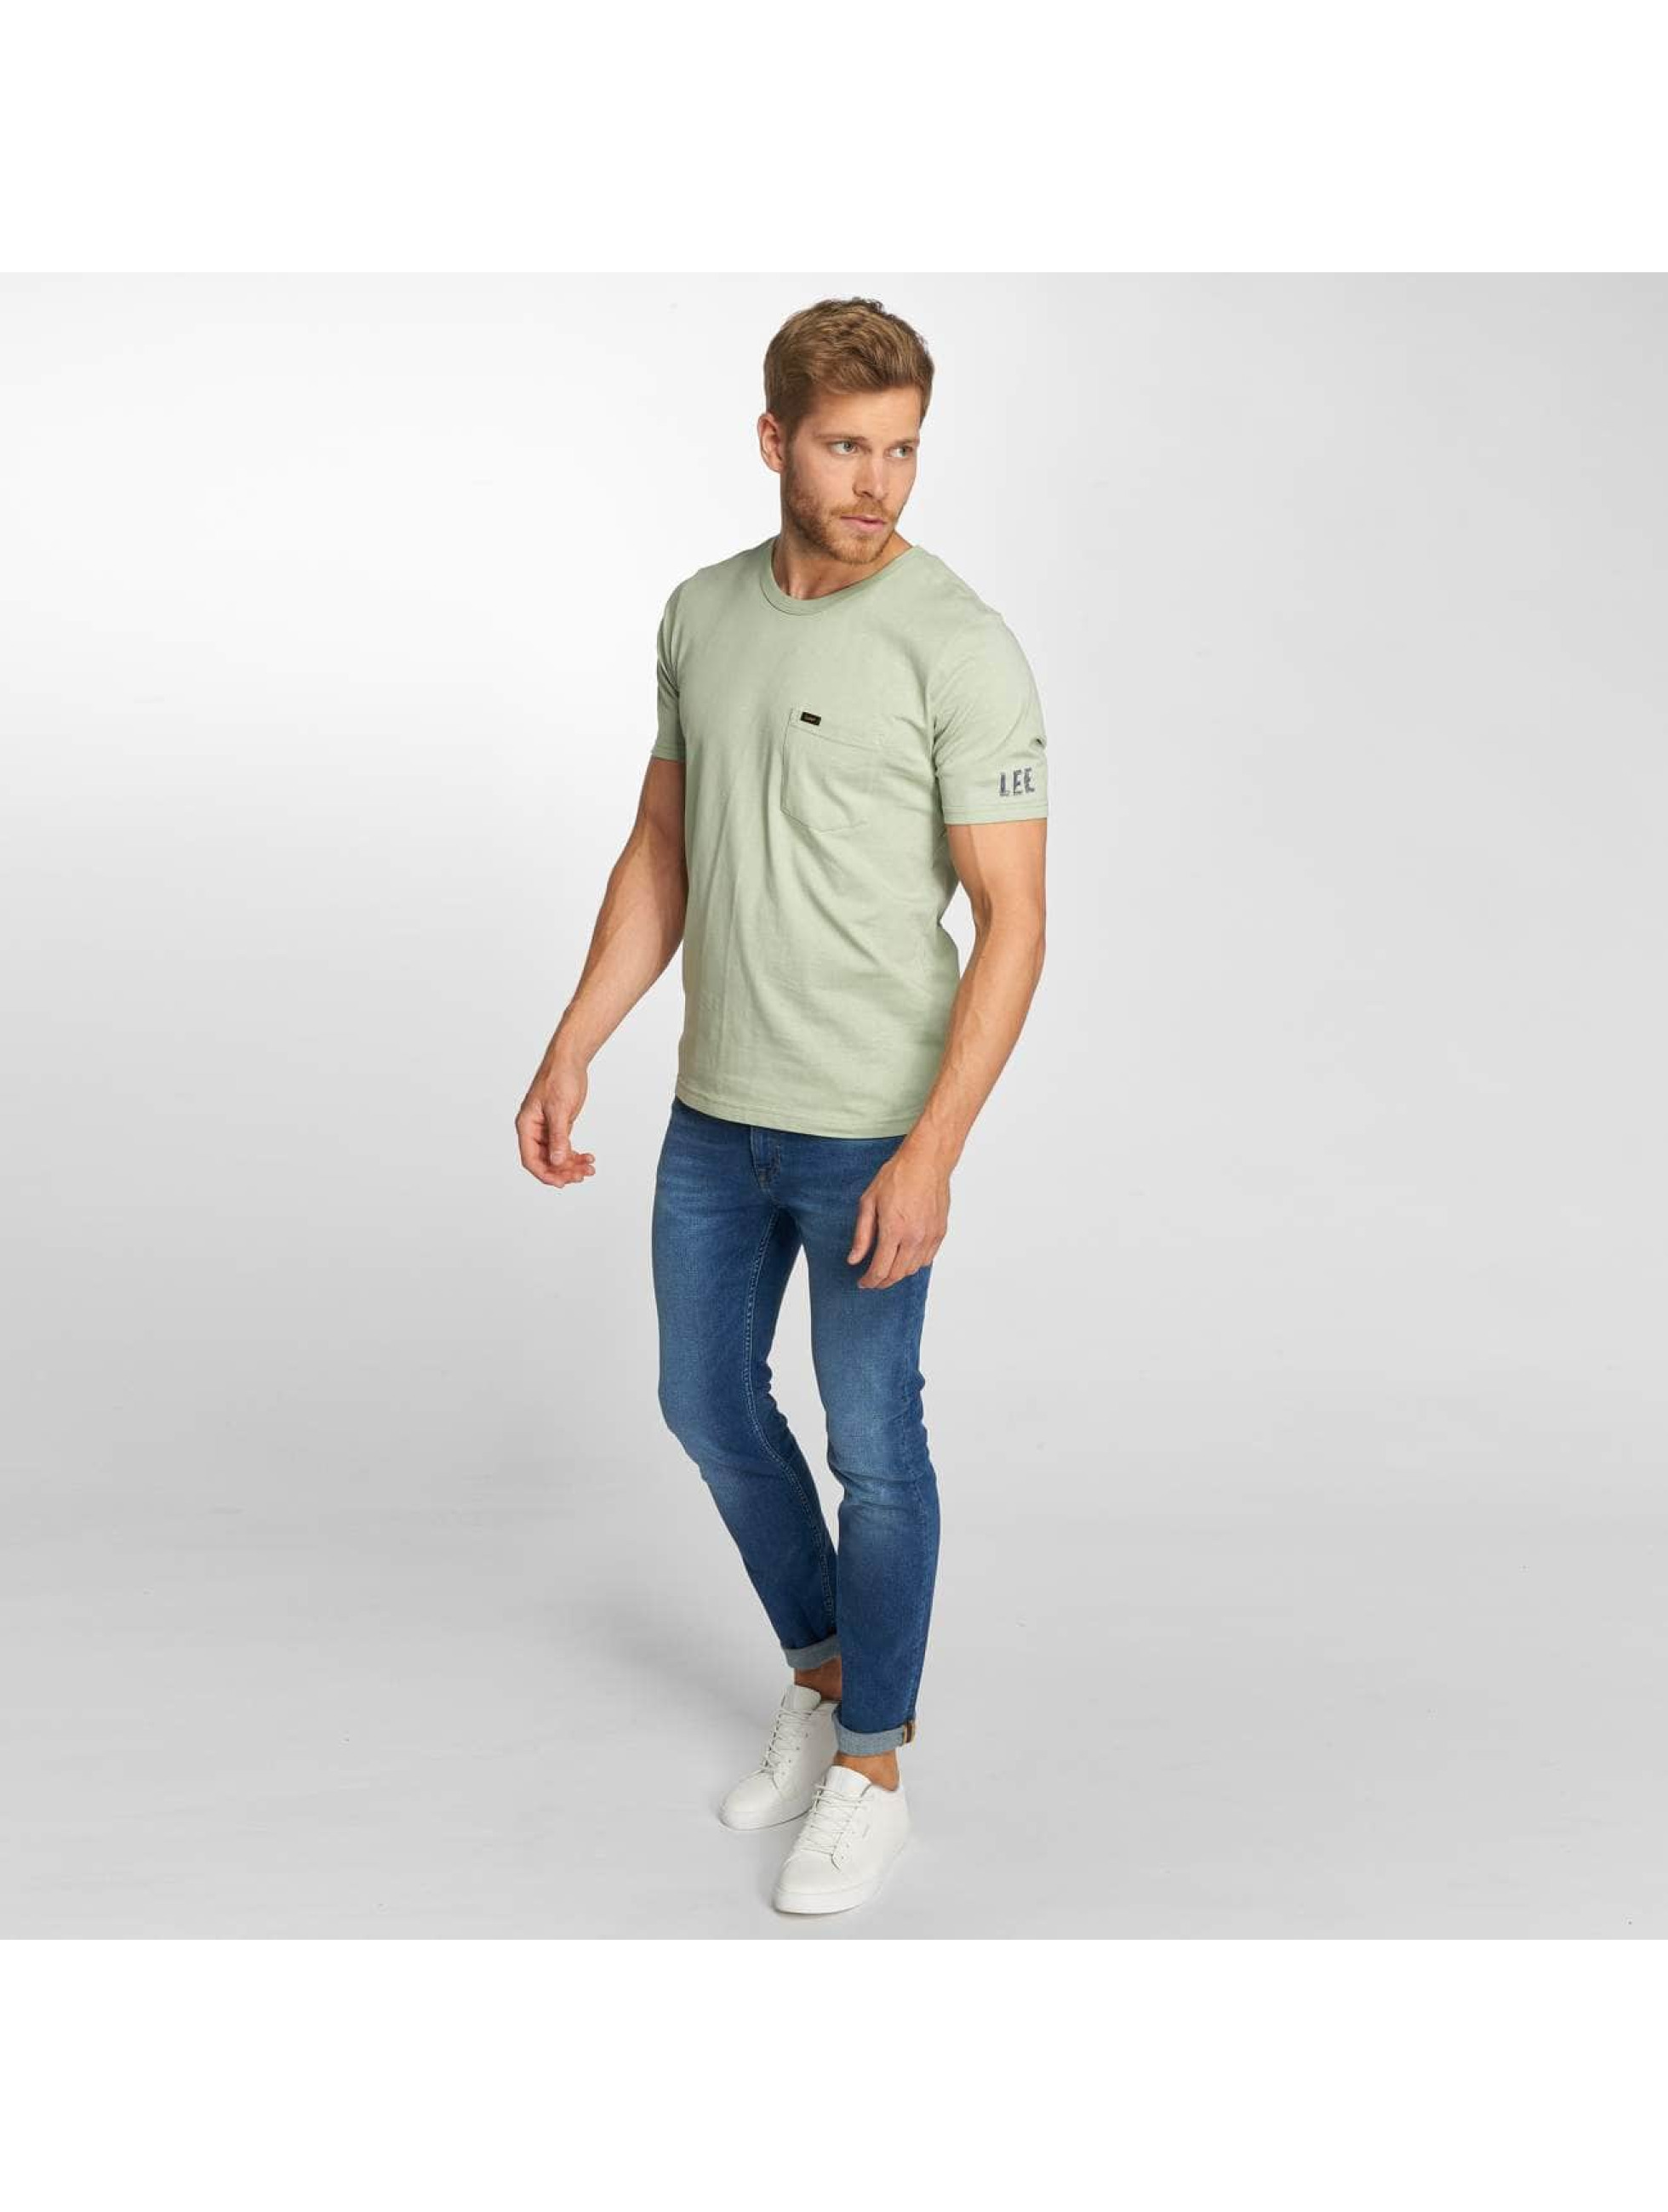 Lee T-Shirt Pocket grün